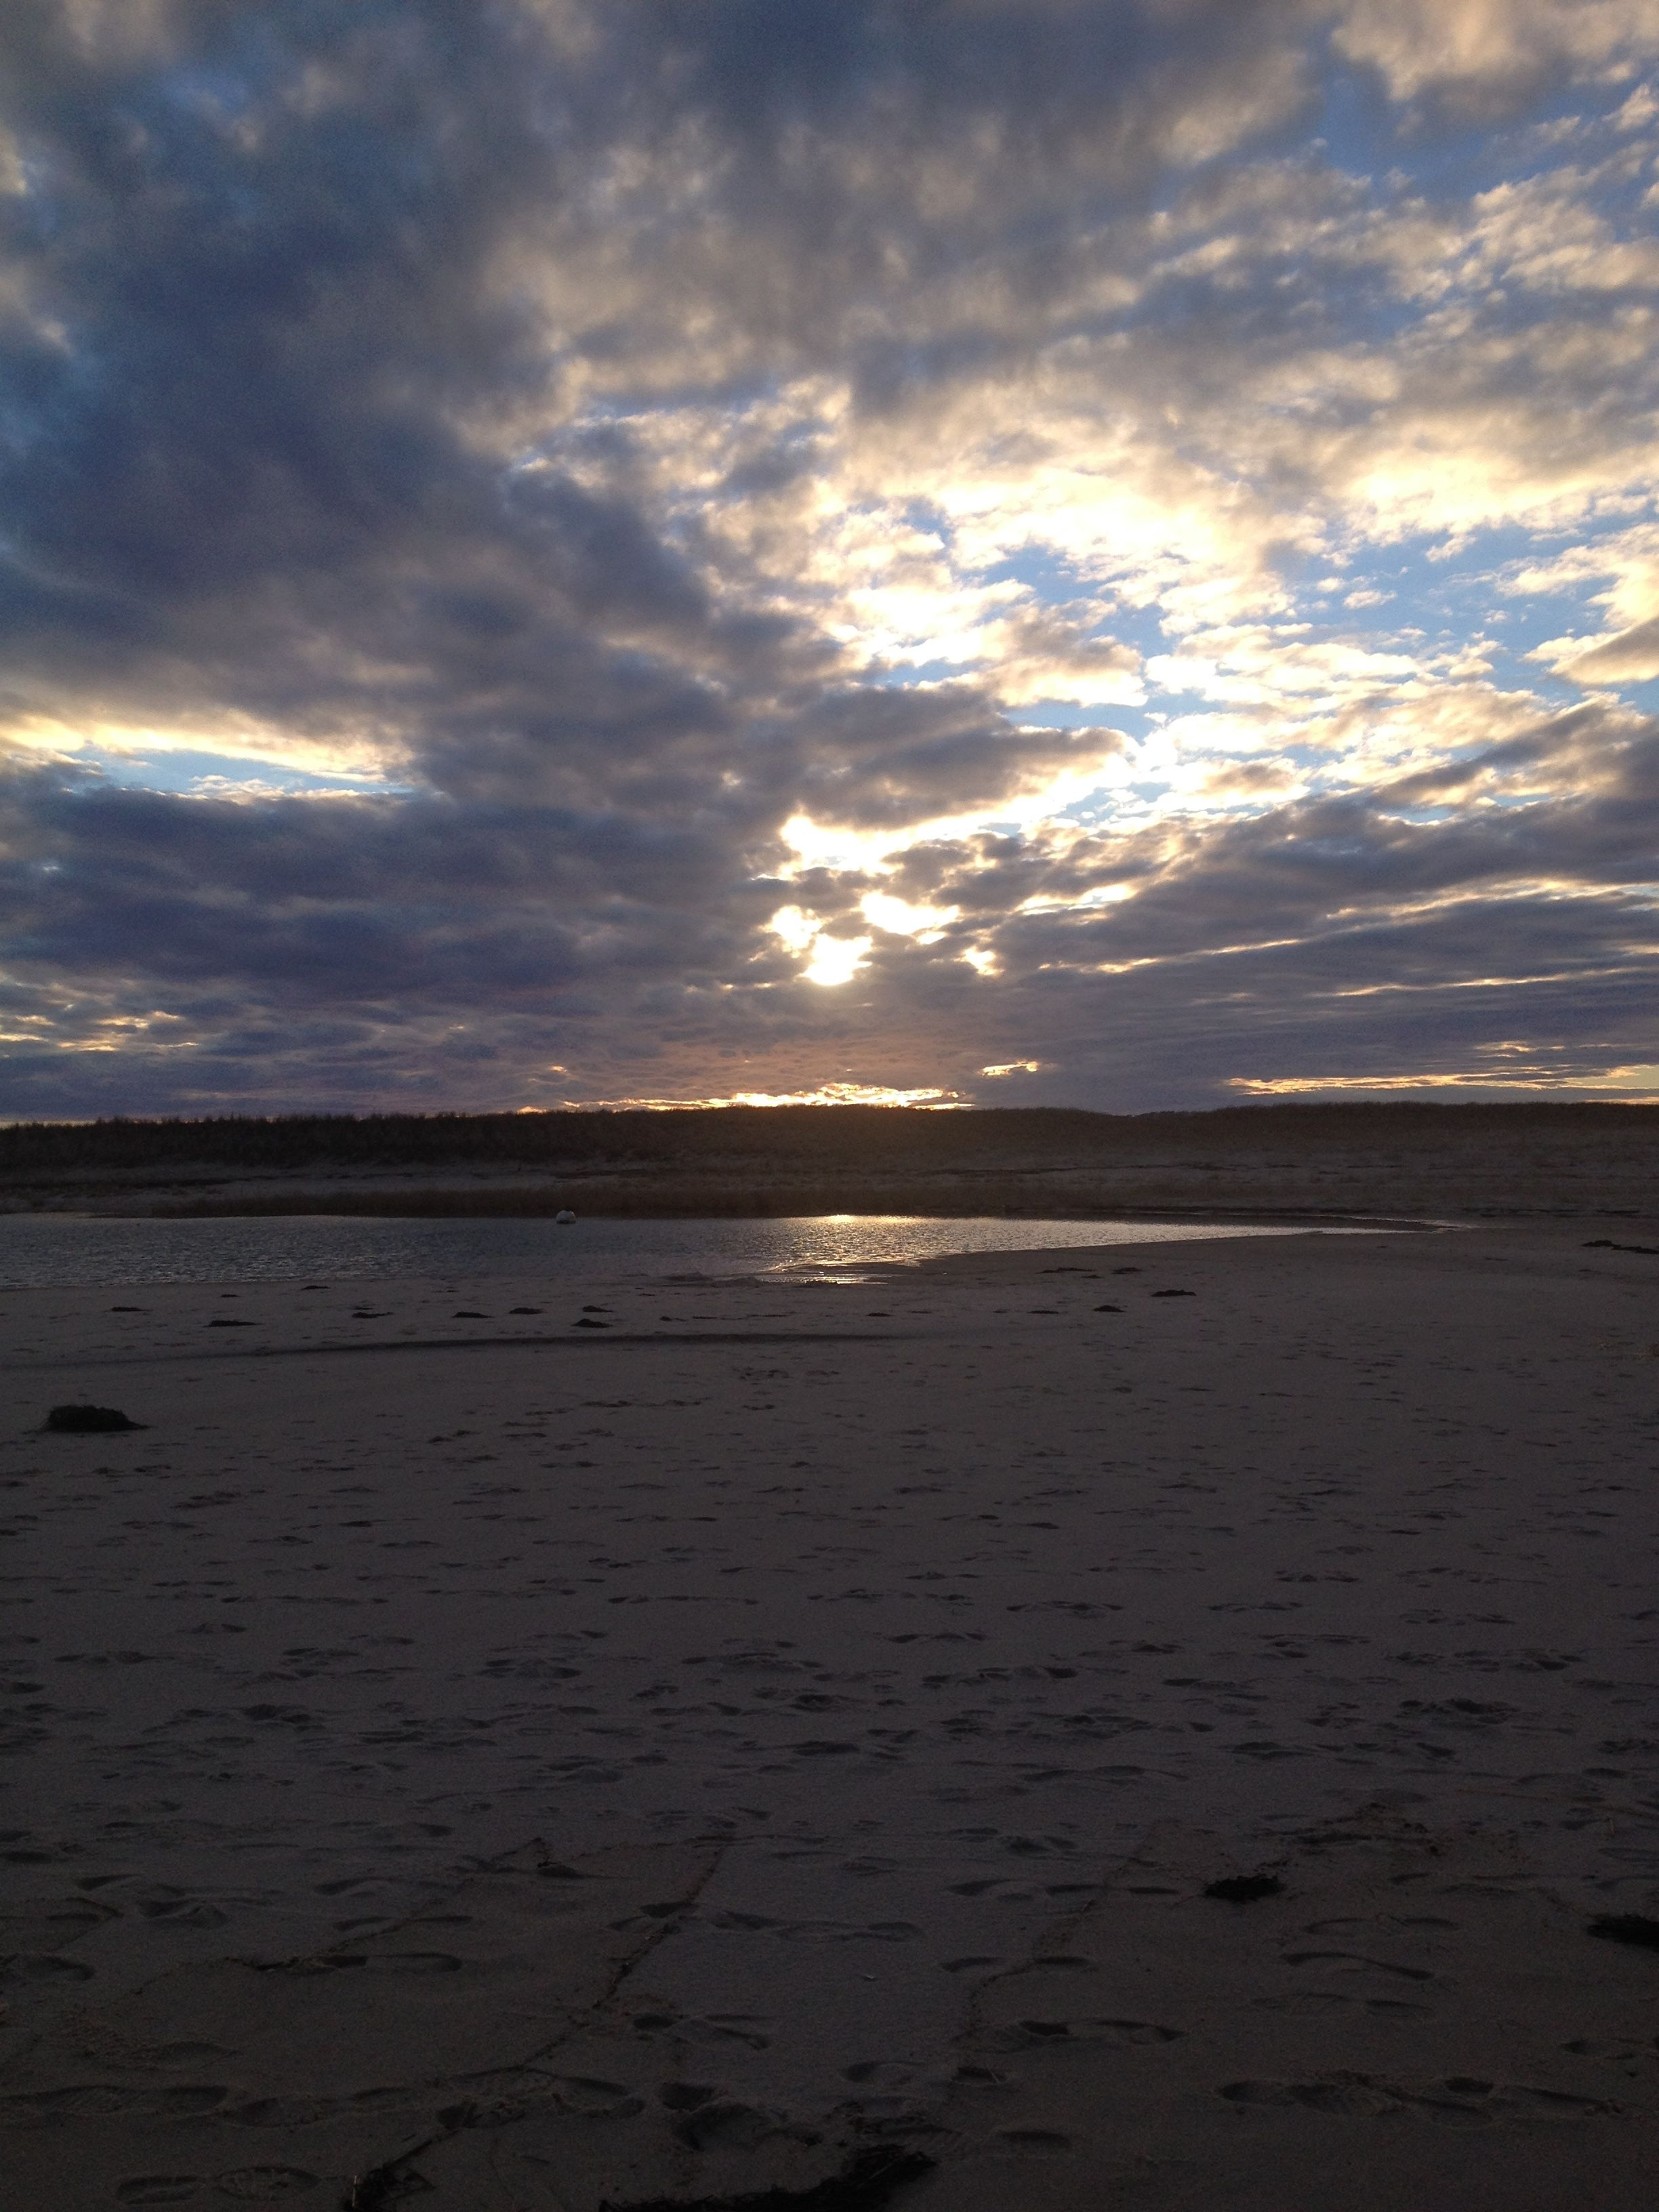 Chatham, MA beach at dusk in the winter, not far from where we harvest seawater.